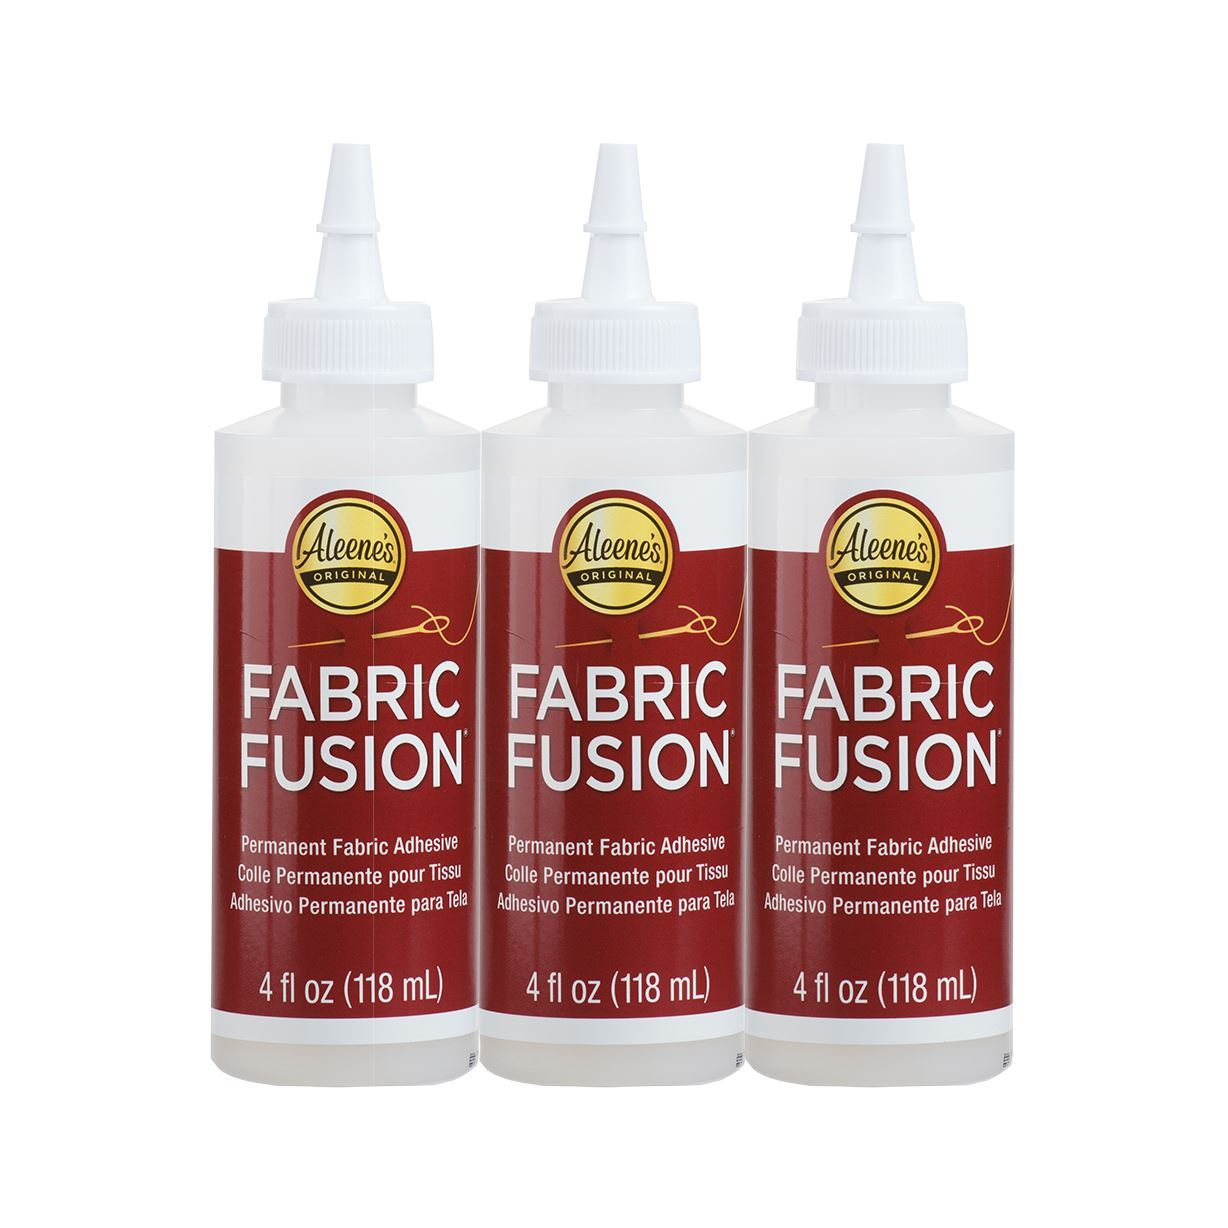 Aleene's Fabric Fusion 3 Pack